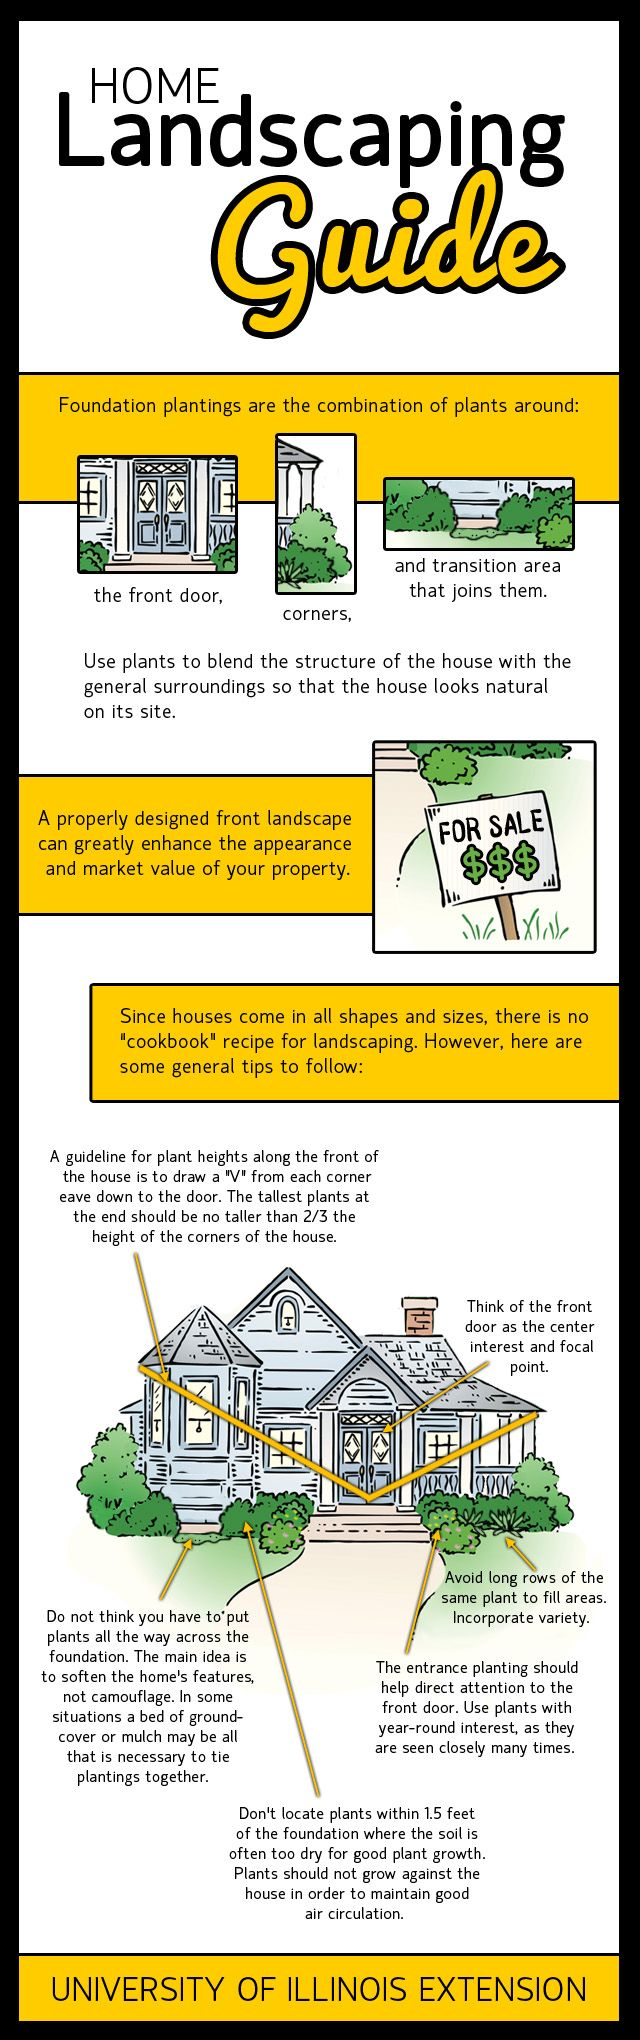 Home Landscaping Guide